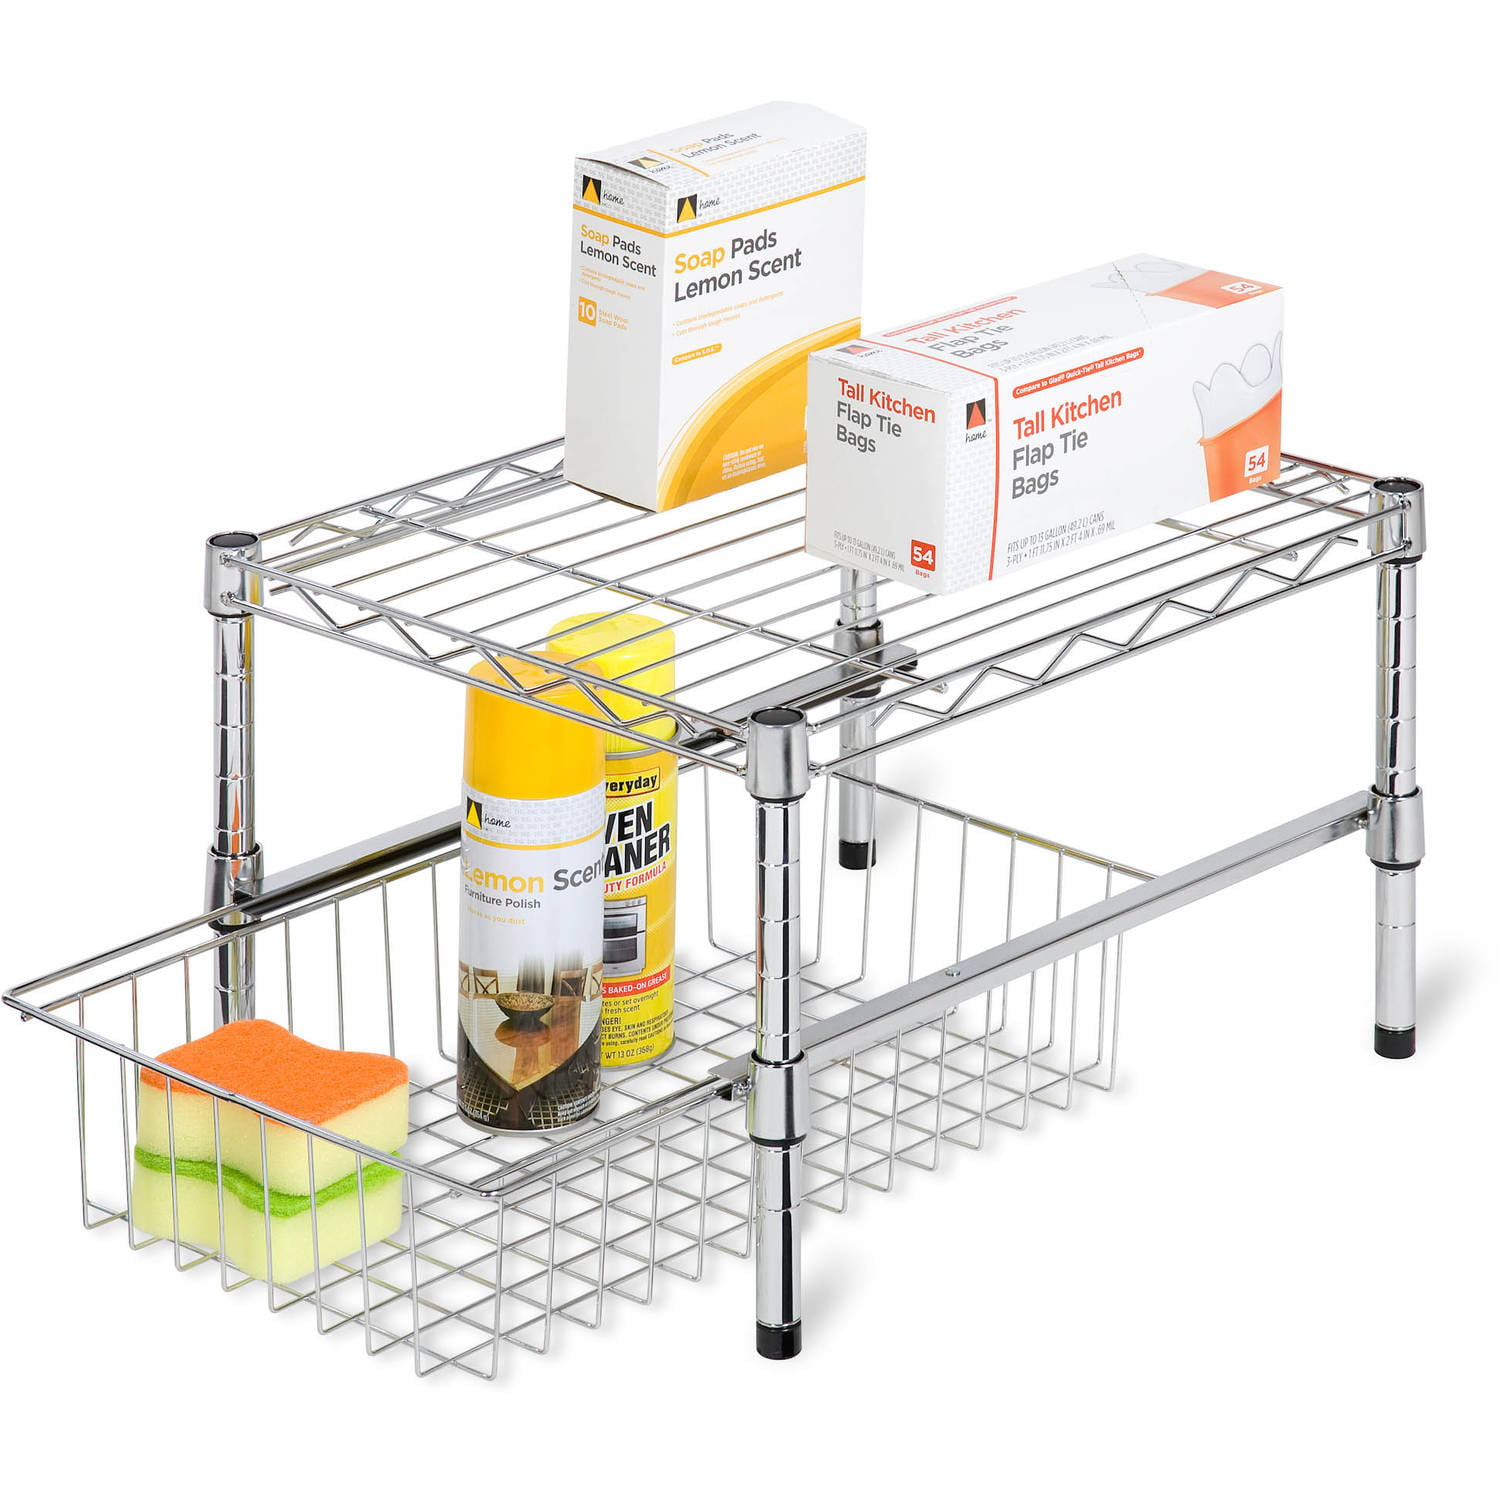 Honey Can Do Adjustable Shelf With Under Cabinet Organizer, Chrome    Walmart.com